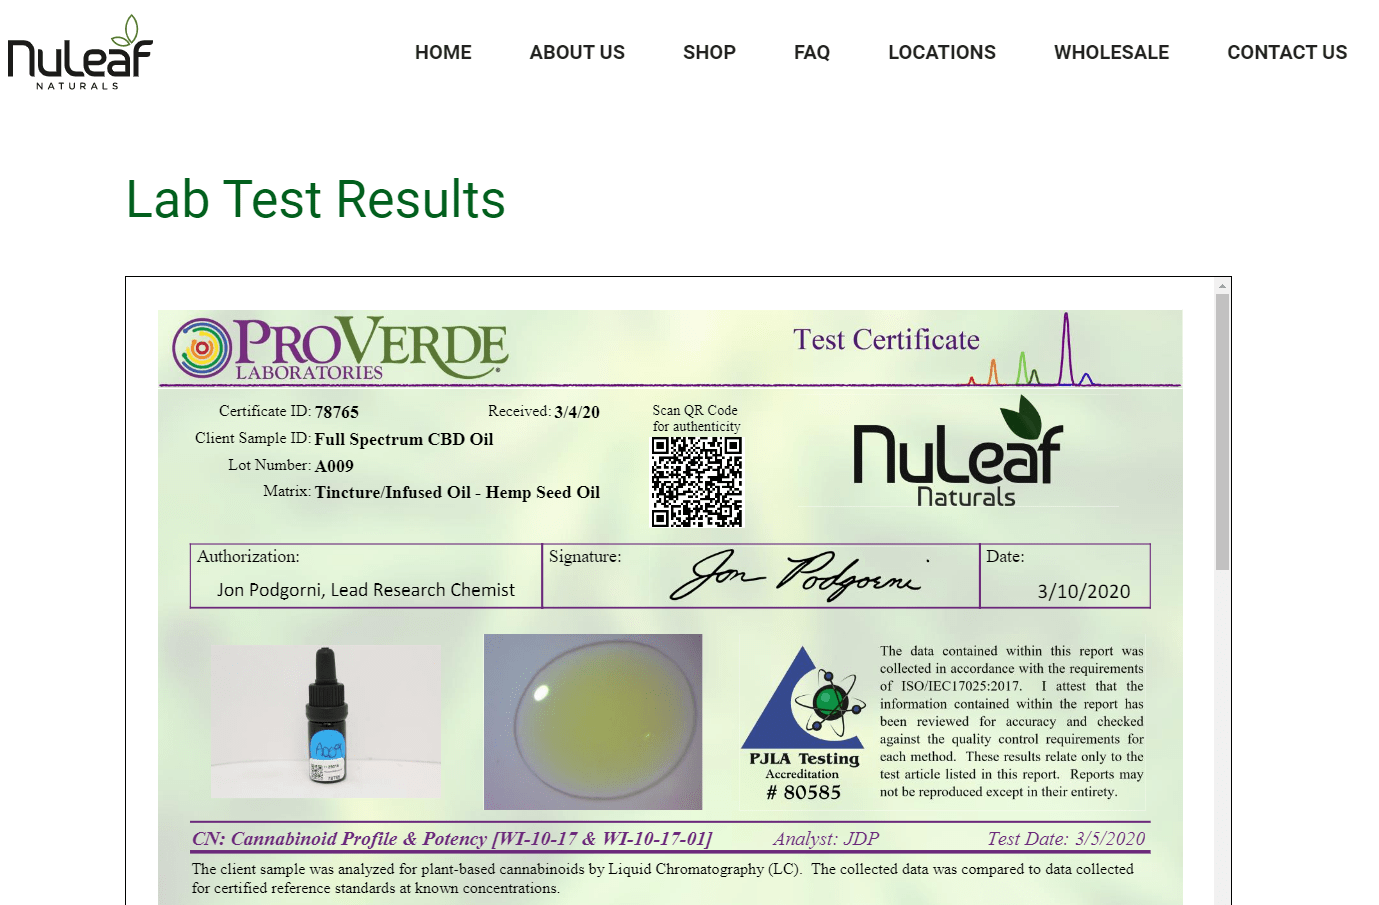 Nuleaf results